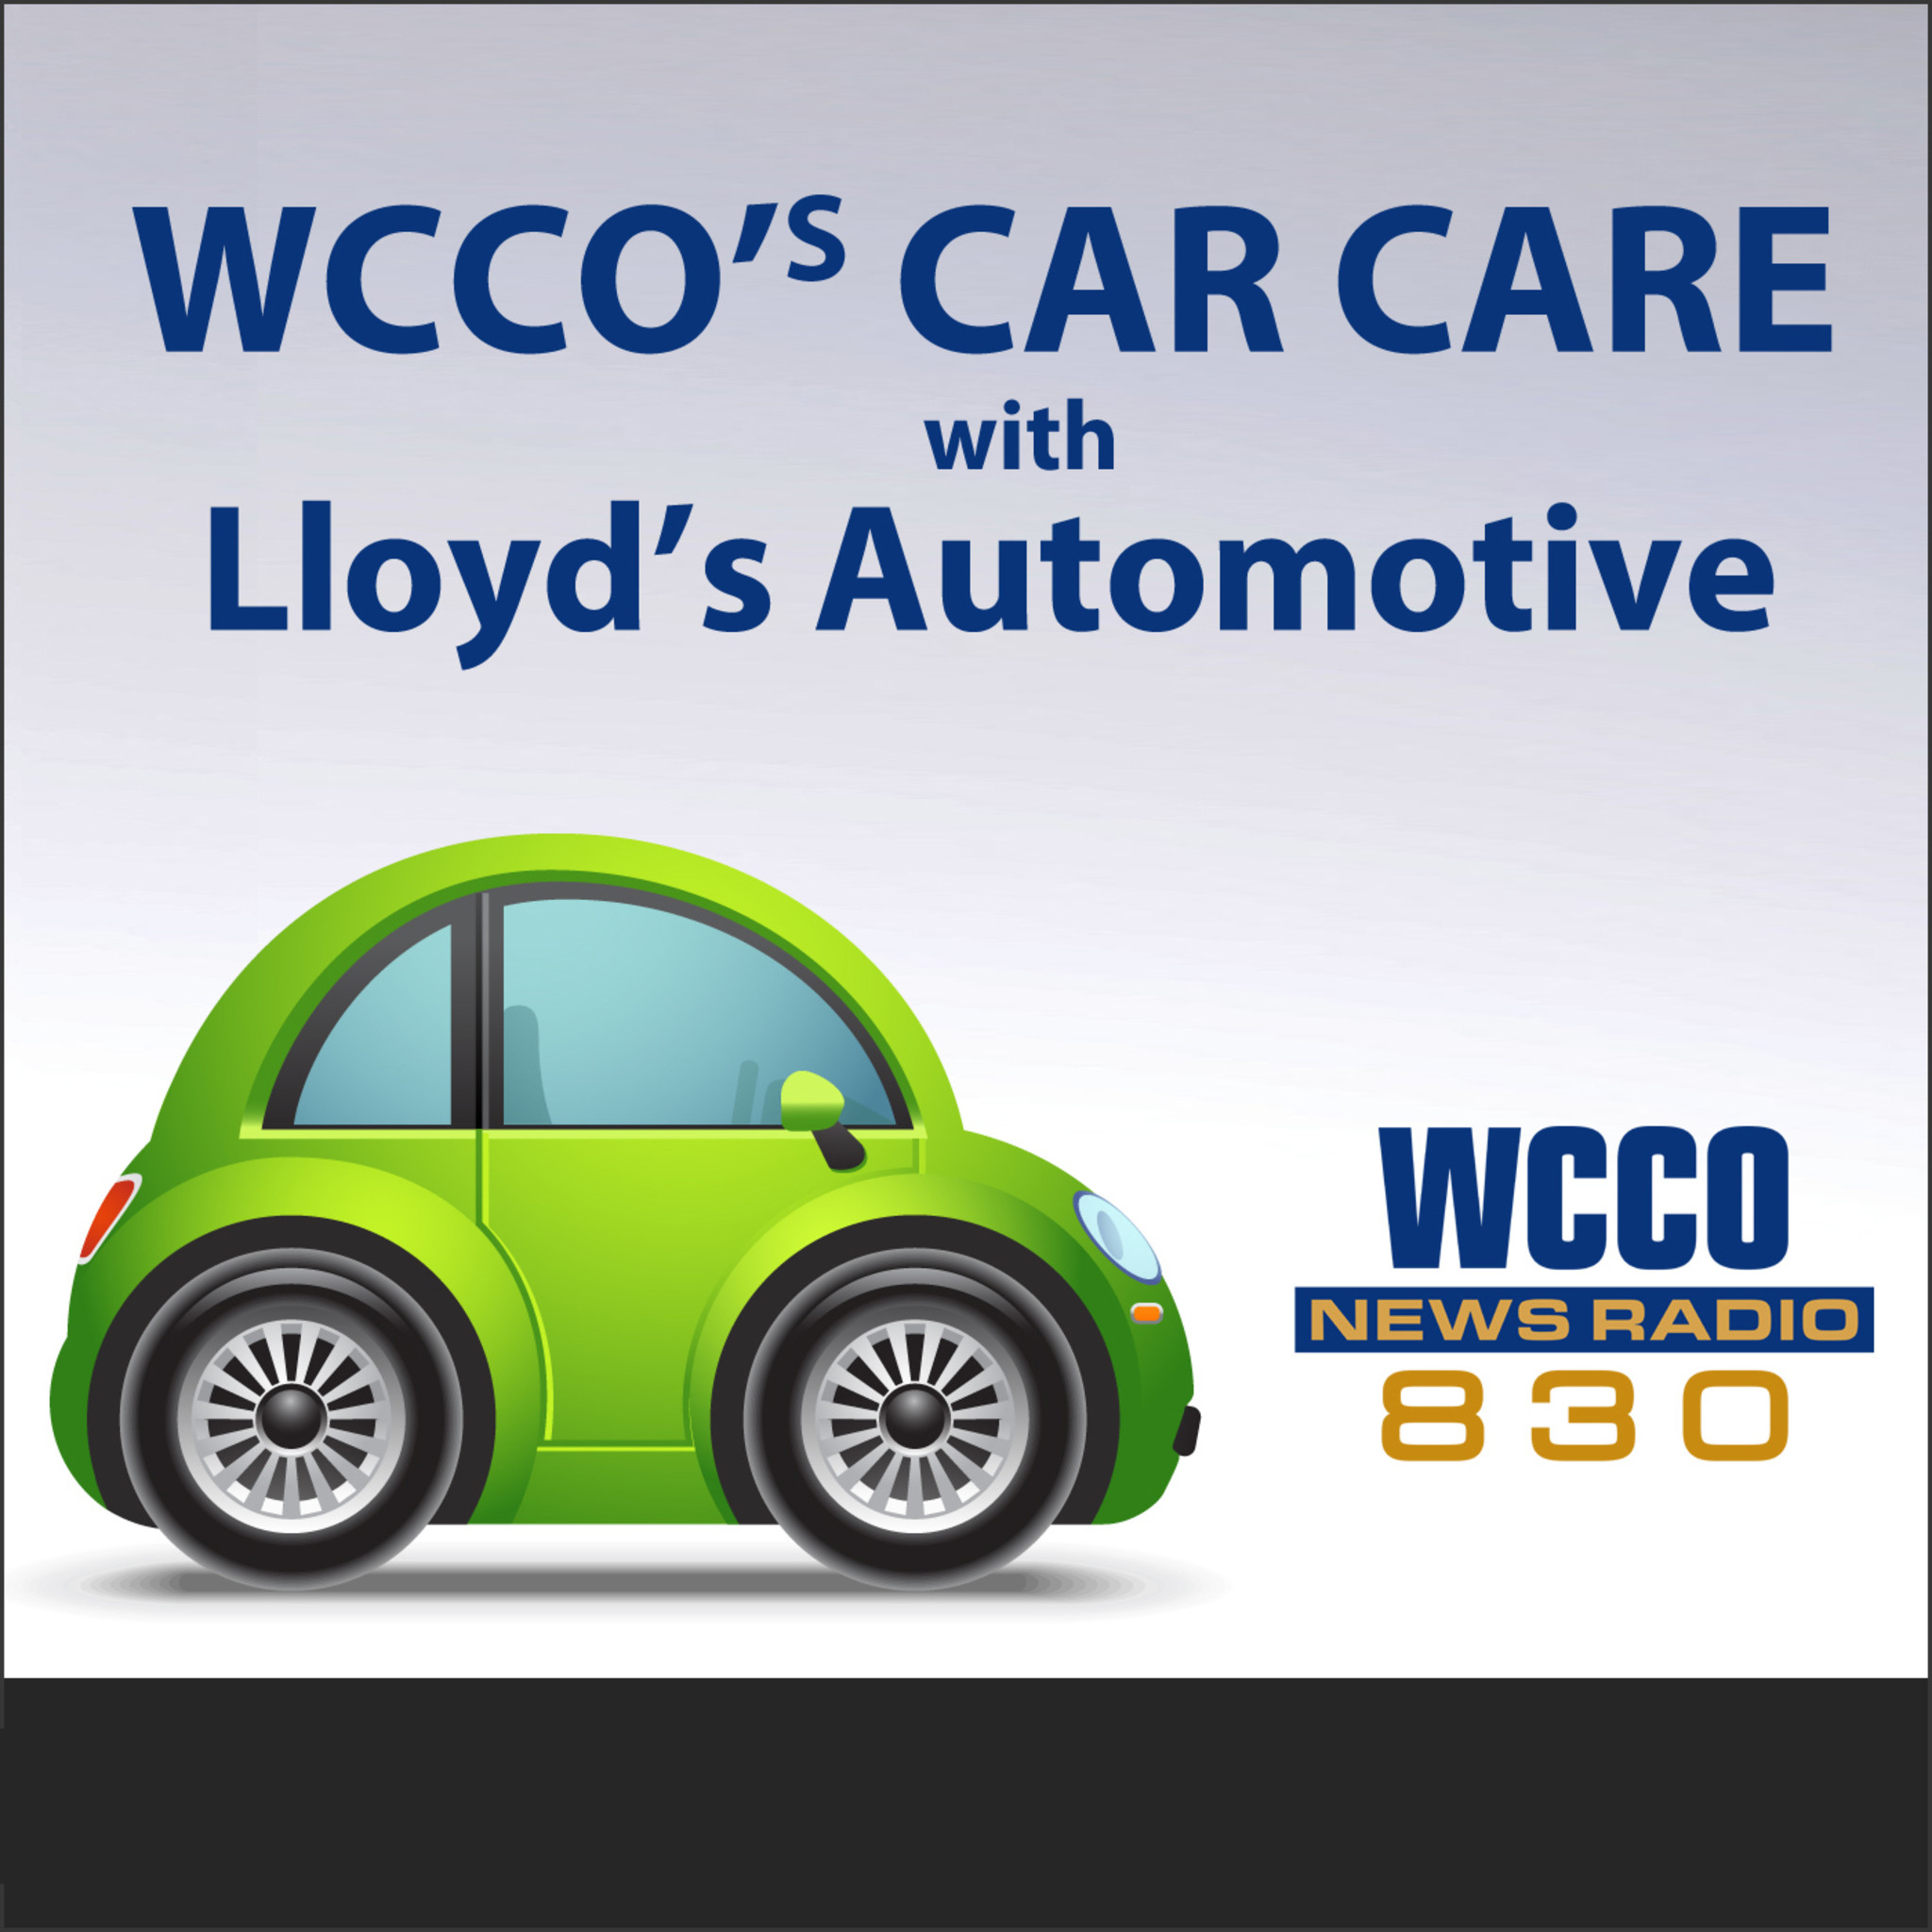 WCCO's Car Care Logo